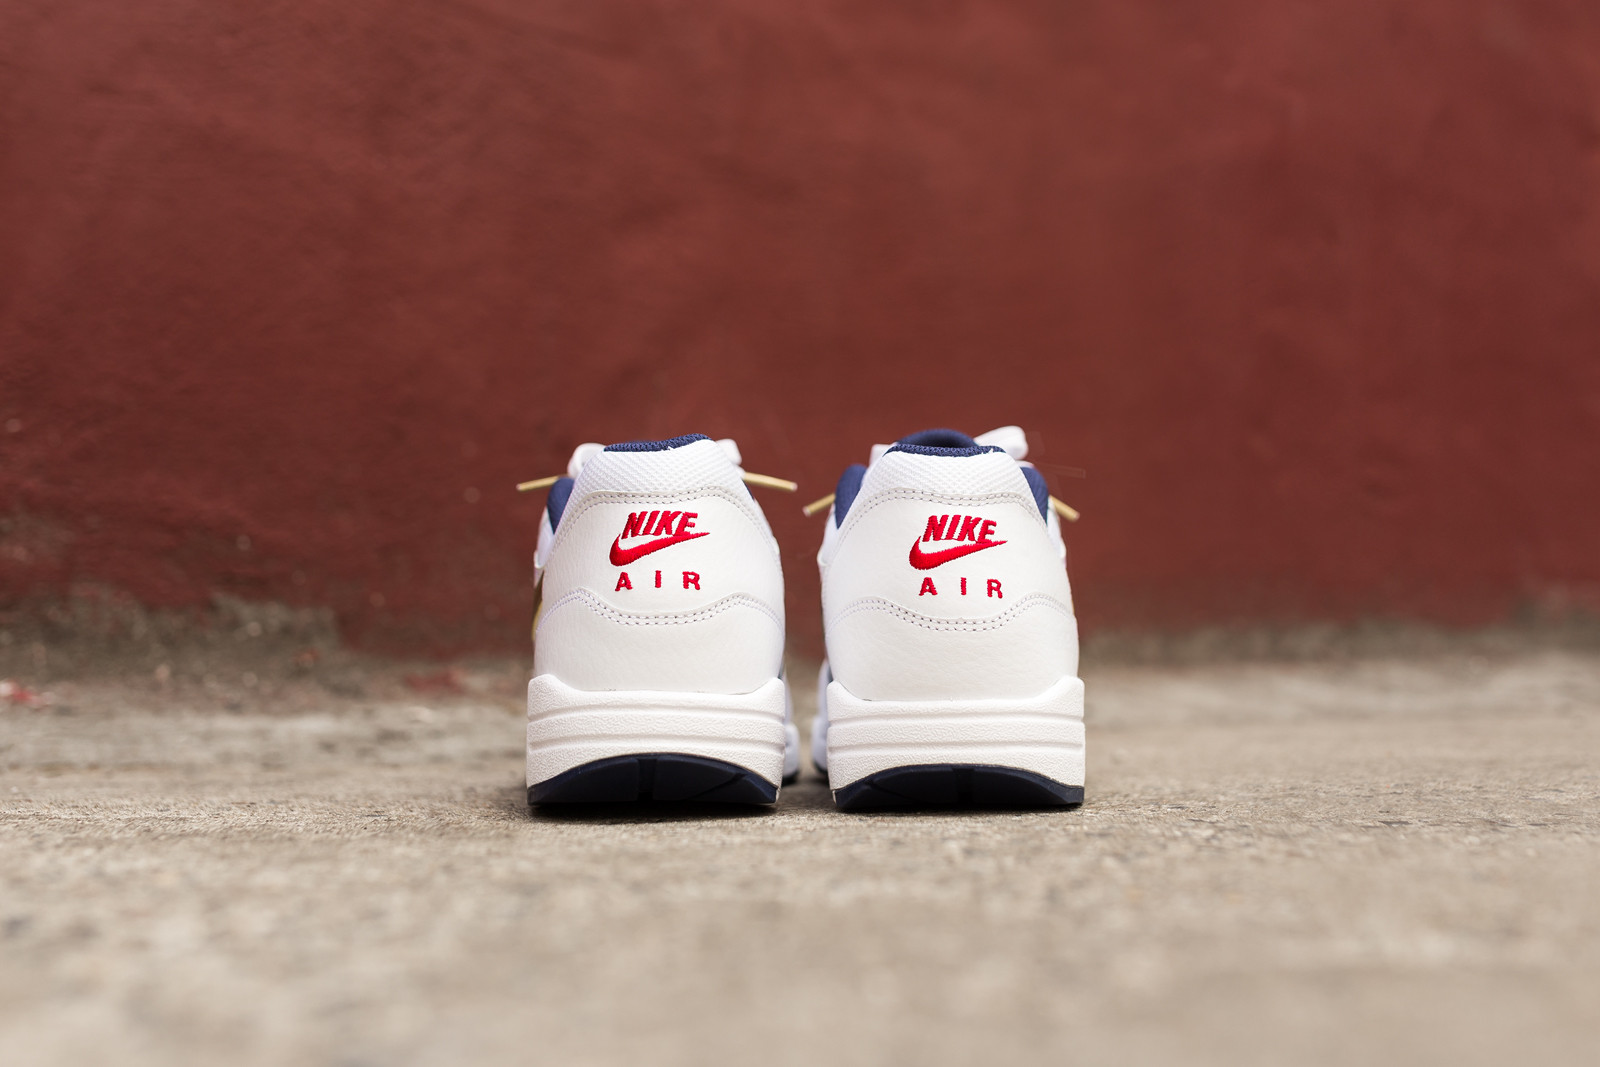 Nike Air Max 1 Olympic Foot Locker Lifestyle of Football von hinten